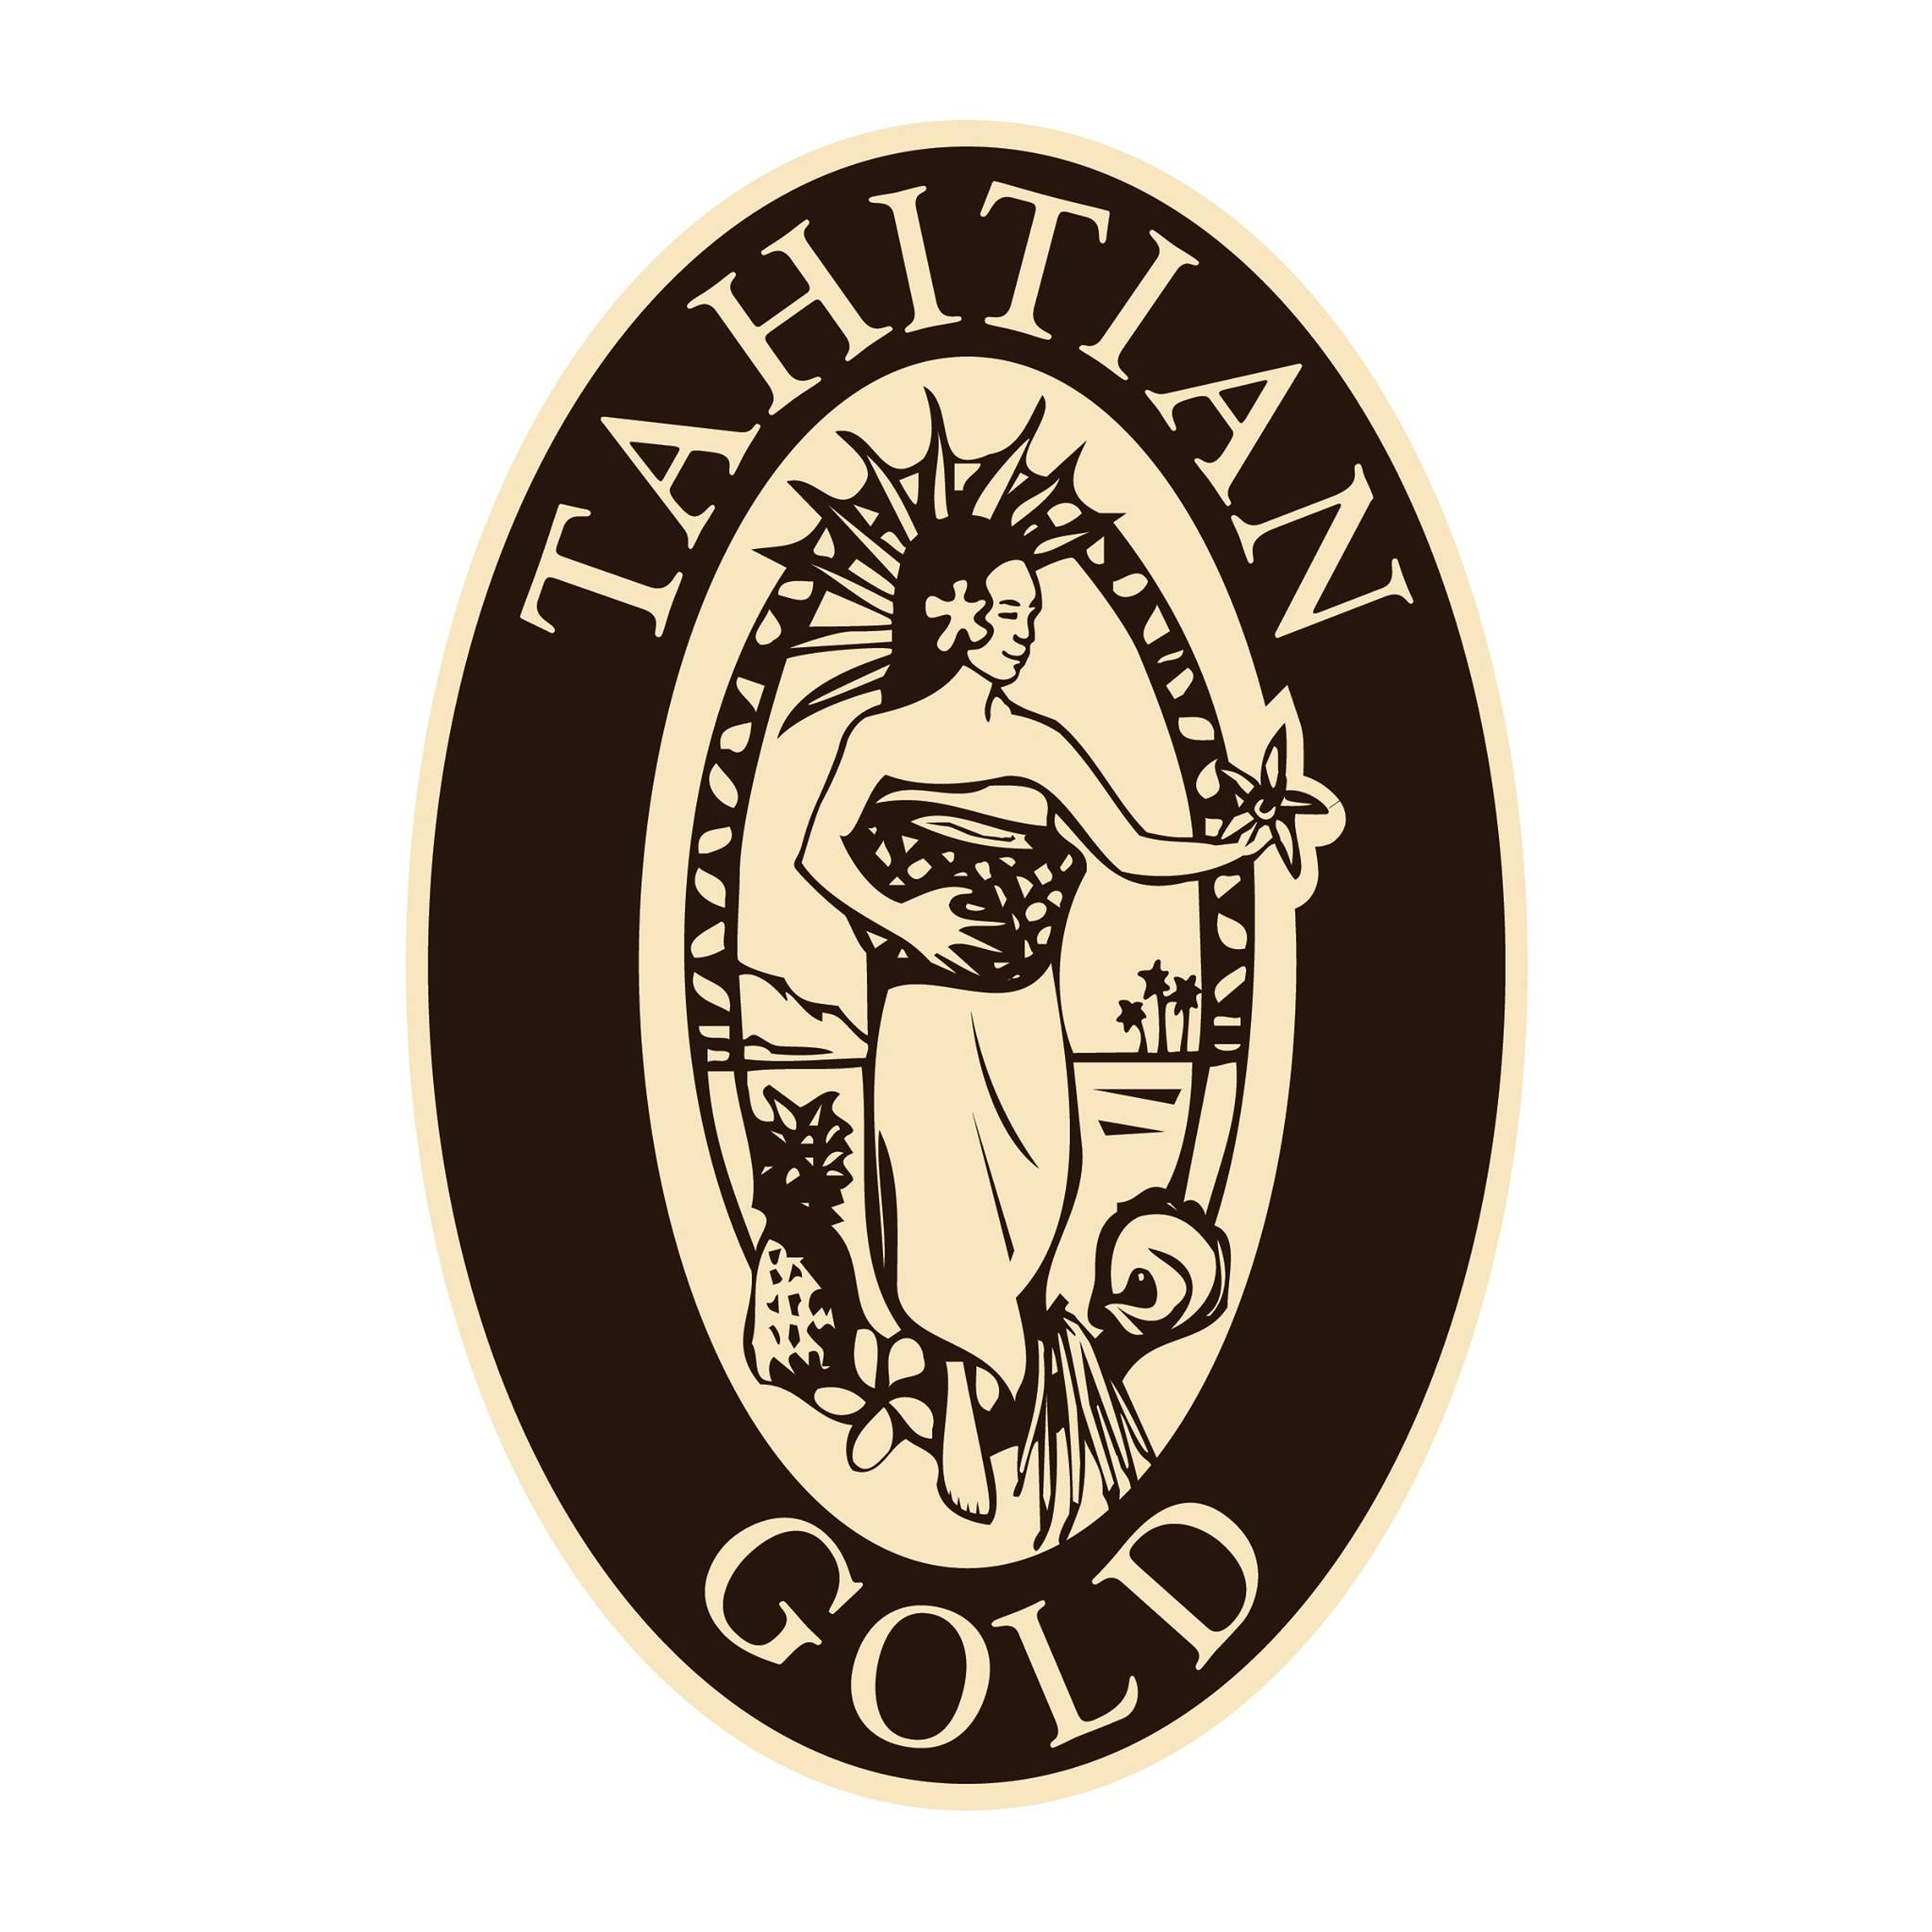 Tahitian Gold Company  is a manufacturer of gourmet vanilla products specializing in authentic Tahitian Vanilla,the world's rarest and most coveted variety.   Tahitian Vanilla